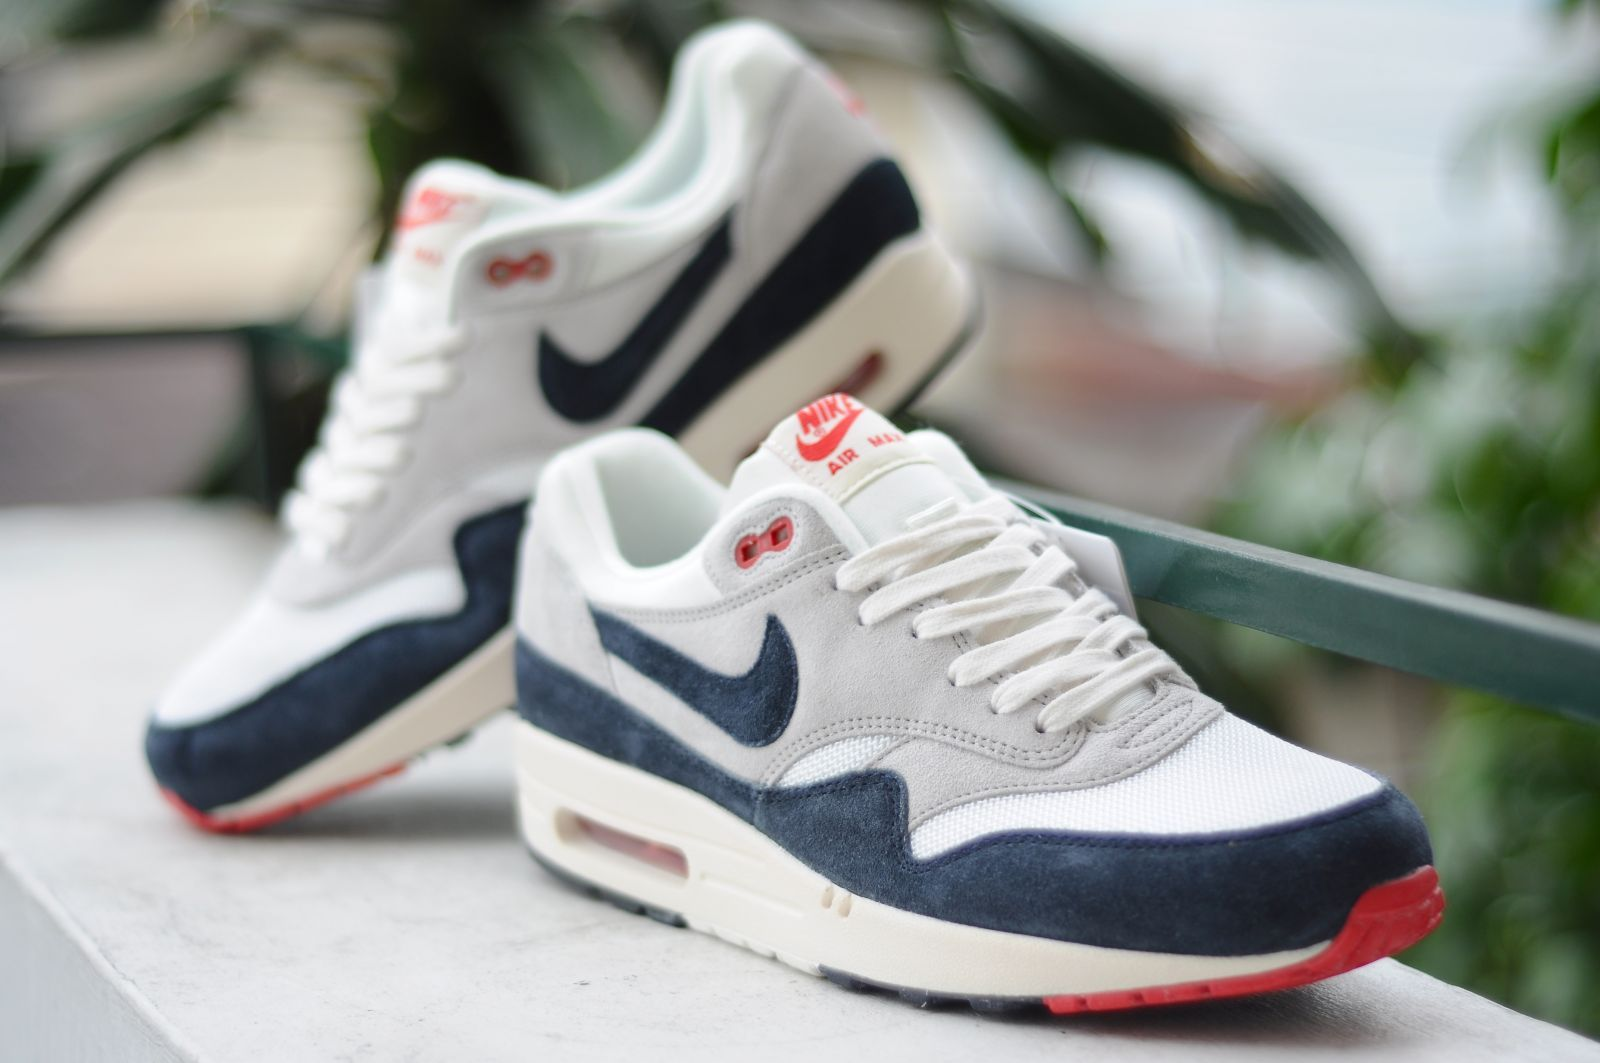 kmhsf 1000+ images about Air Max 1 on Pinterest | Air max 1, Nike air